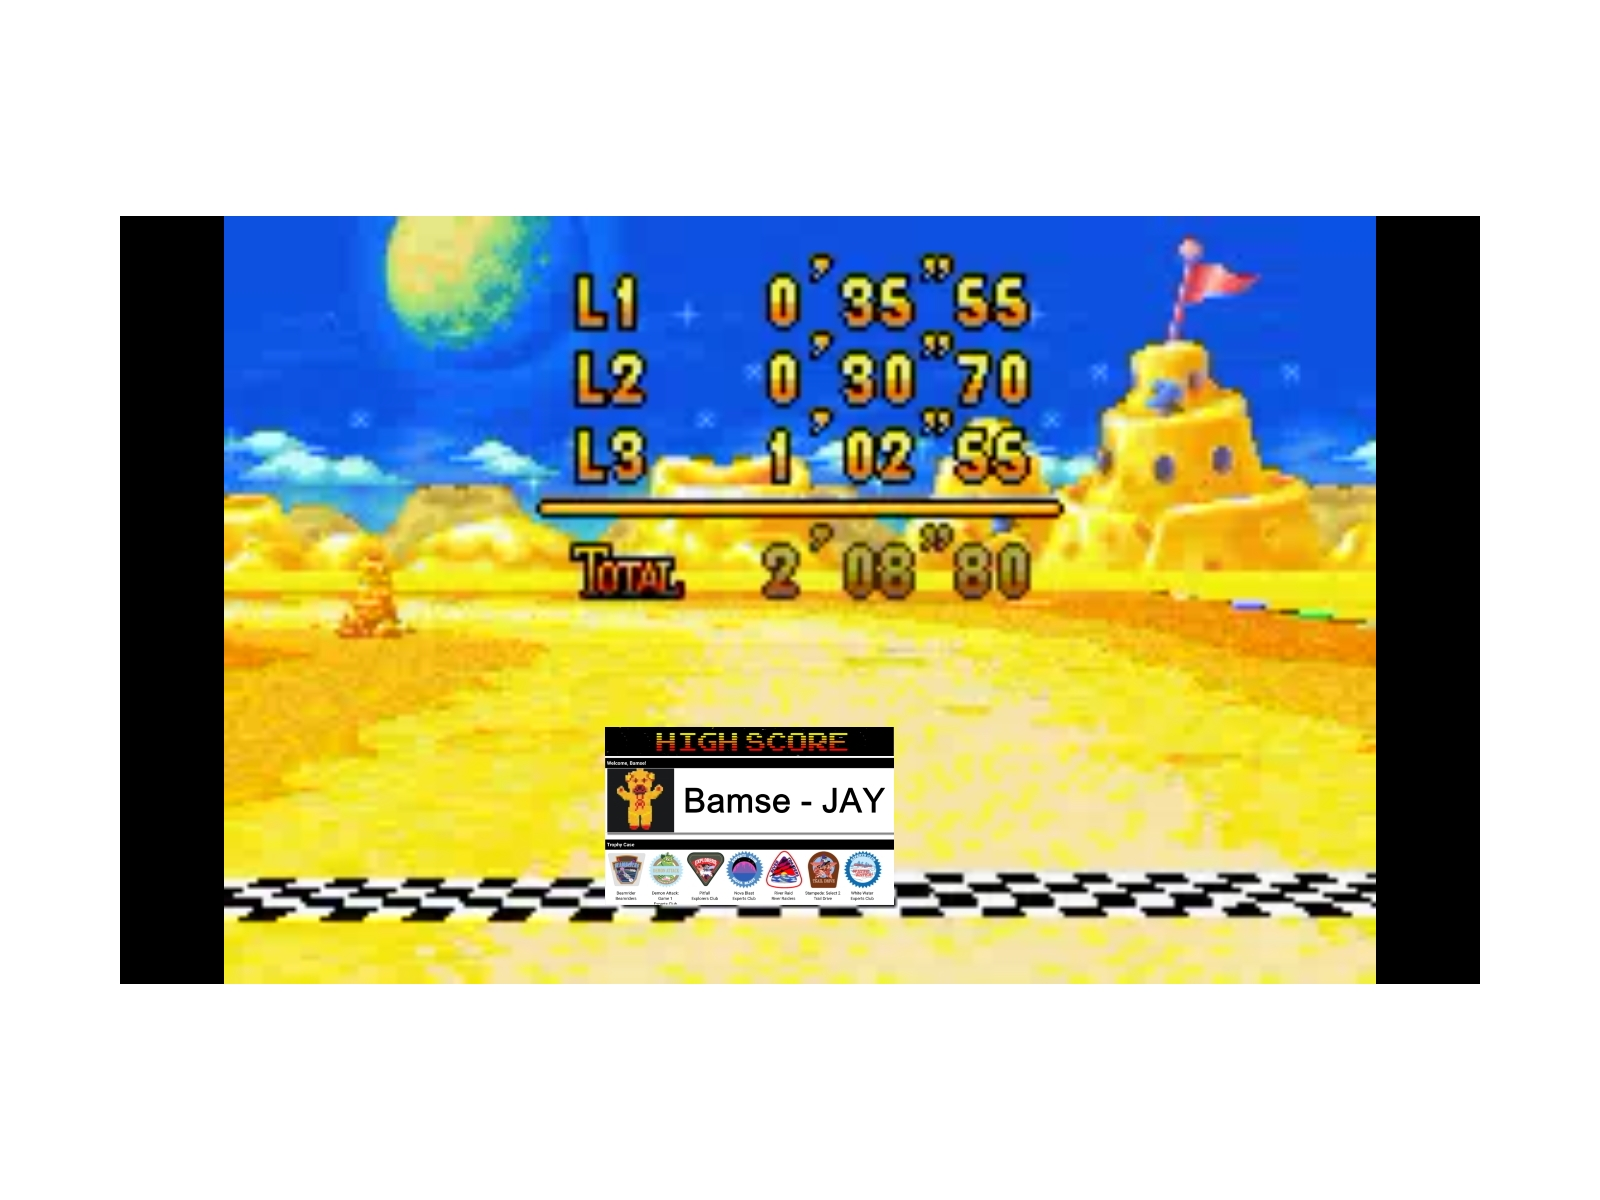 Mario Kart Super Circuit: Cheese Land [50cc] time of 0:02:08.8